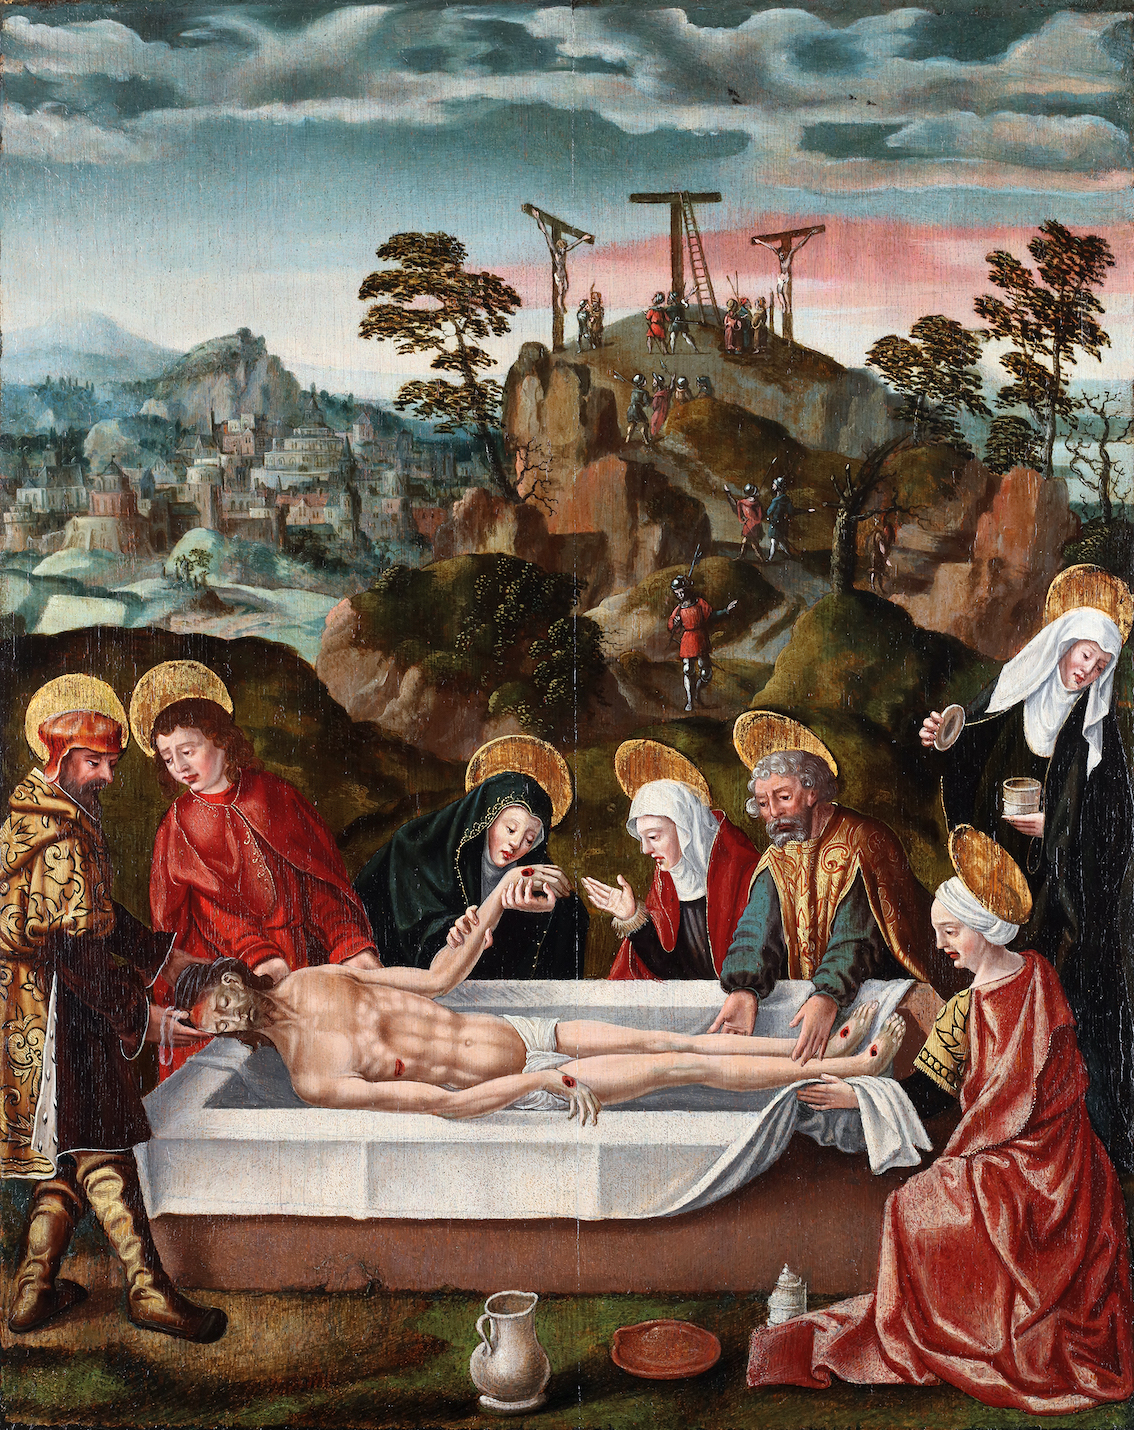 The Entombment of Christ  in front of Jerusalem and the hill of Golgotha